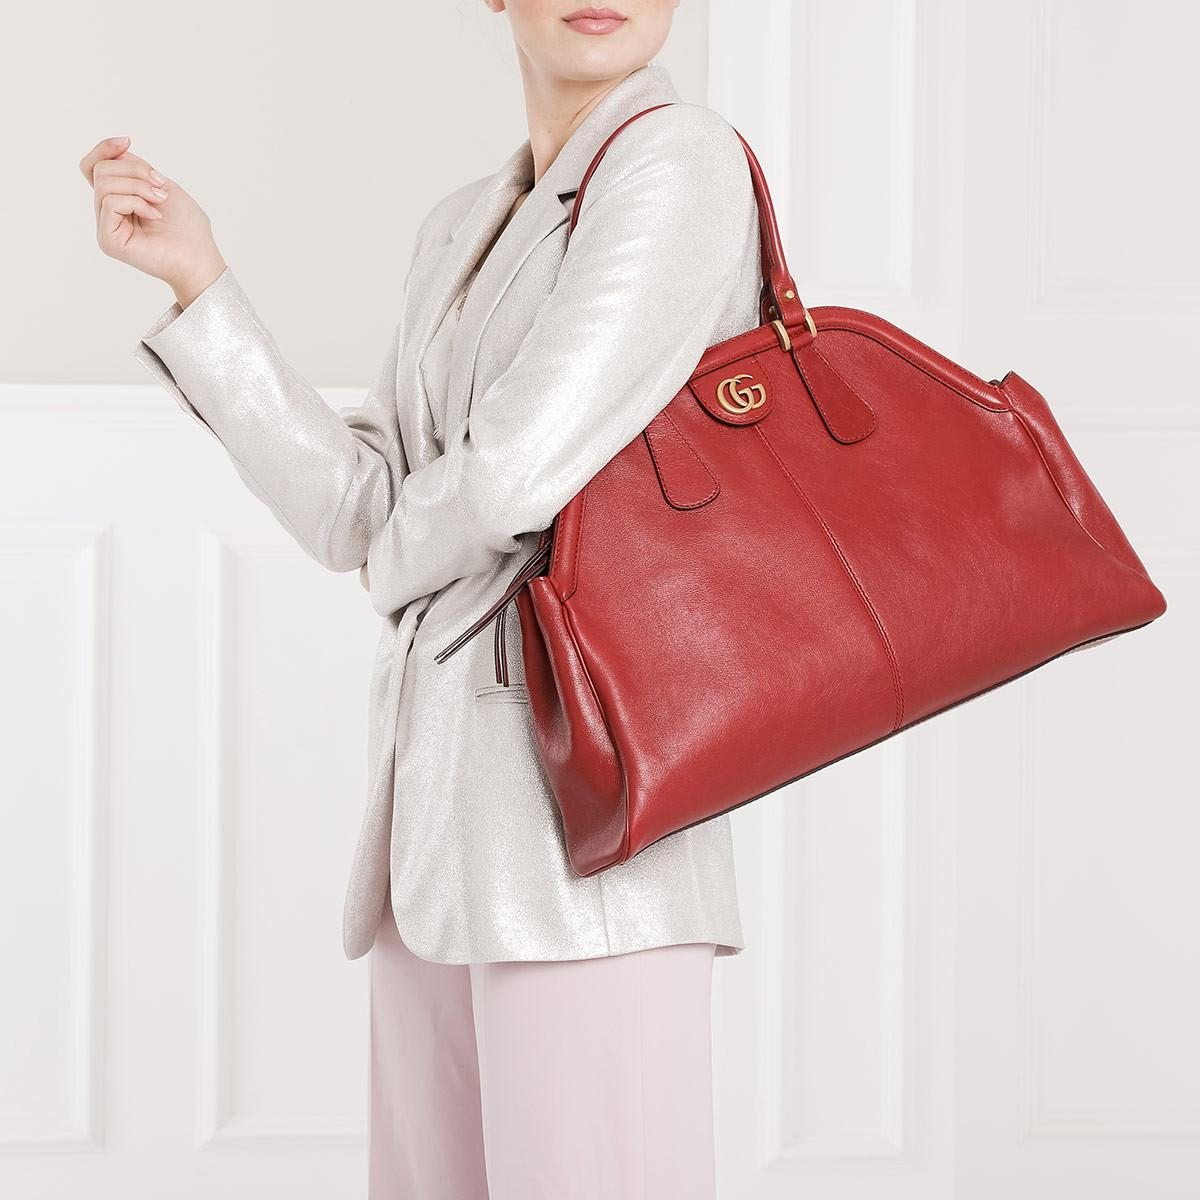 eeac59b0935c Gucci - Rebelle Large Top Handle Bag Leather Red - Lyst. View fullscreen